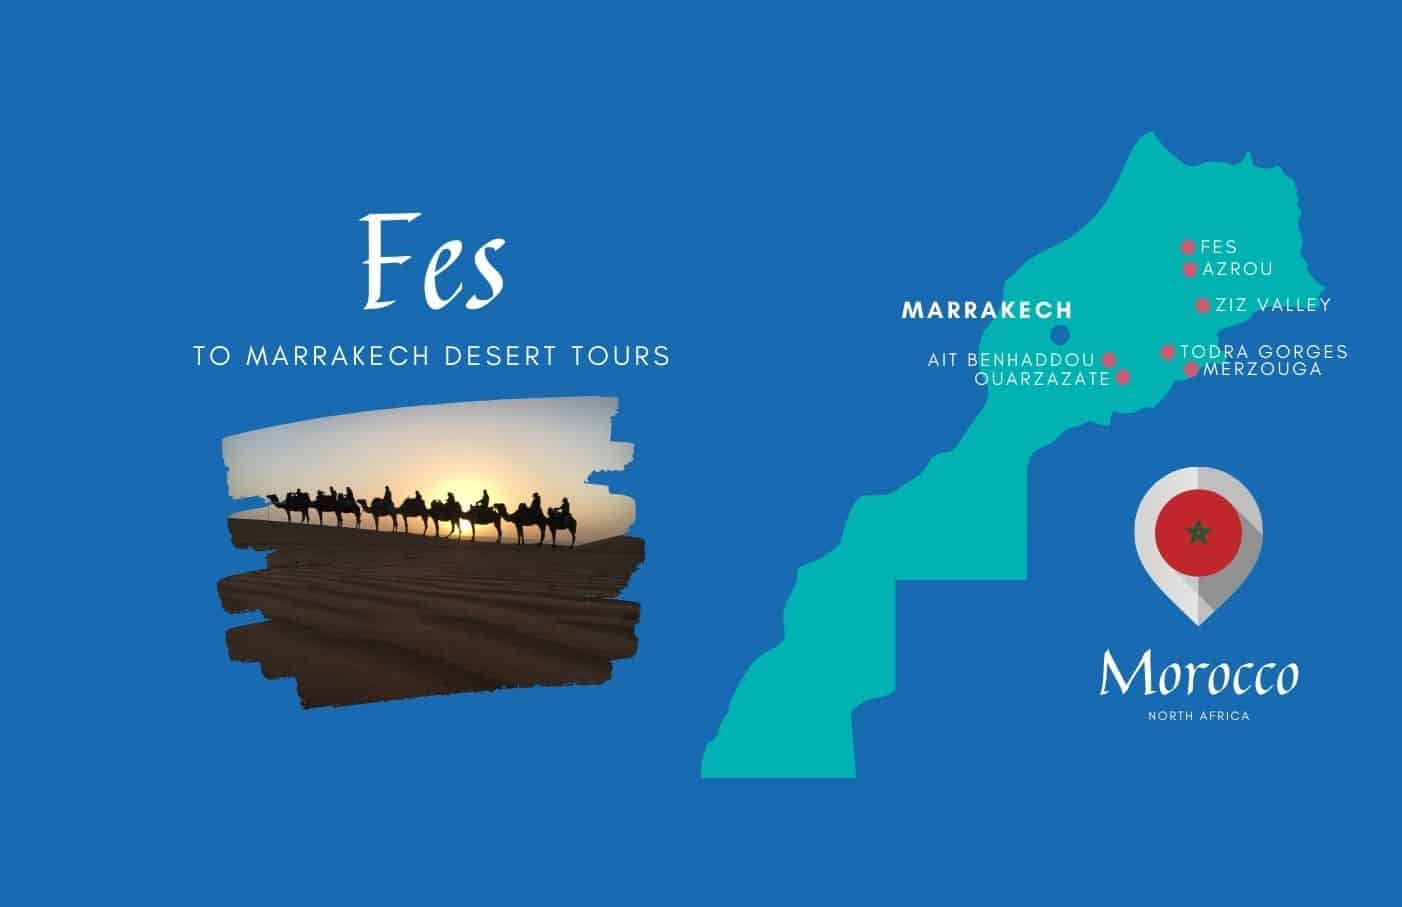 Fes to Marrakech desert tours Map